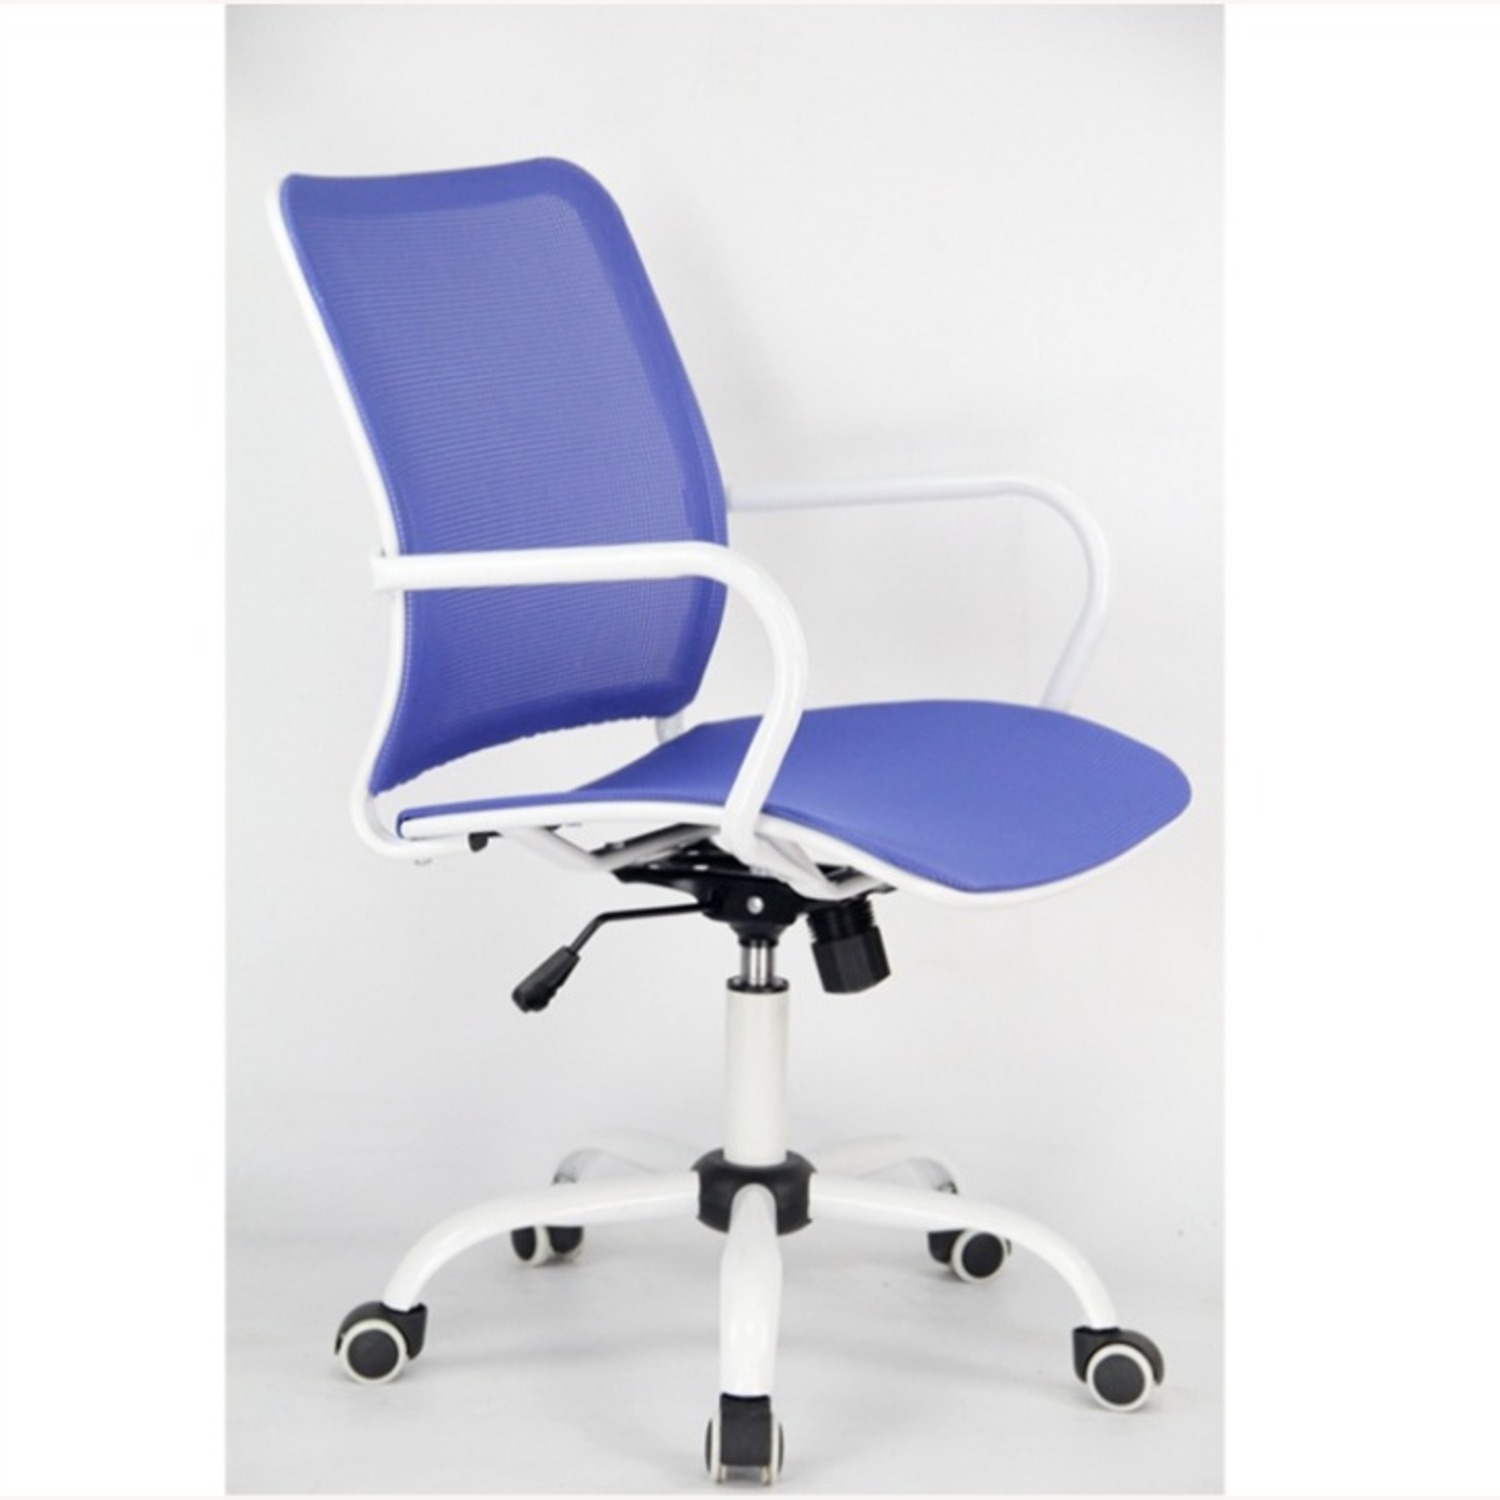 Office Chair In Blue Back & Seat Mesh Finish - image-1